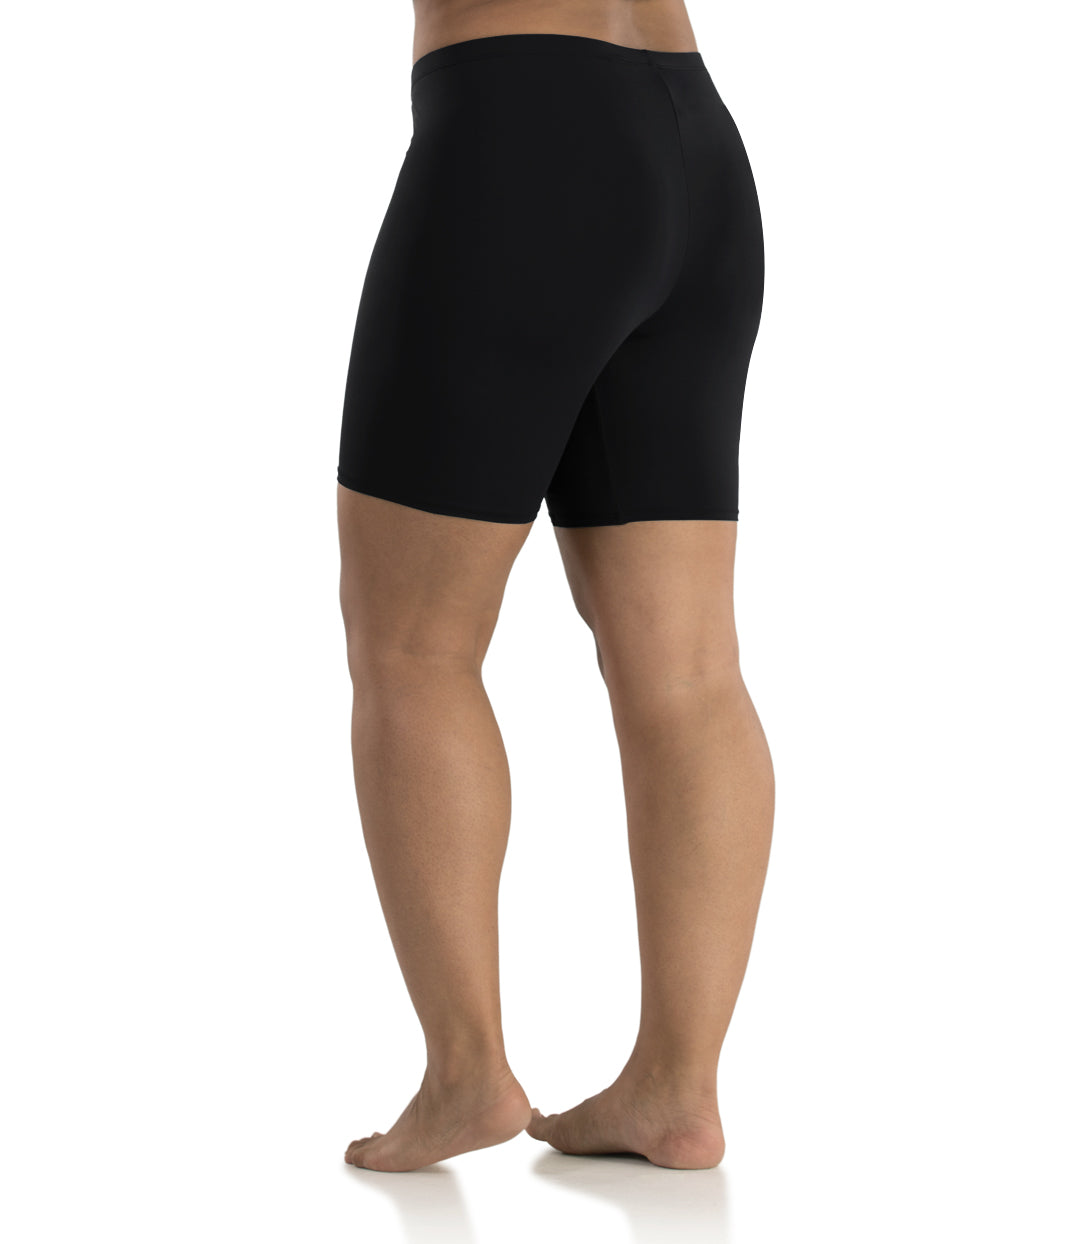 Junowear Hush Boxer Brief-Plus Size Underwear & Intimates-Hop Wo Trading Co Ltd-1X-BLACK-JunoActive